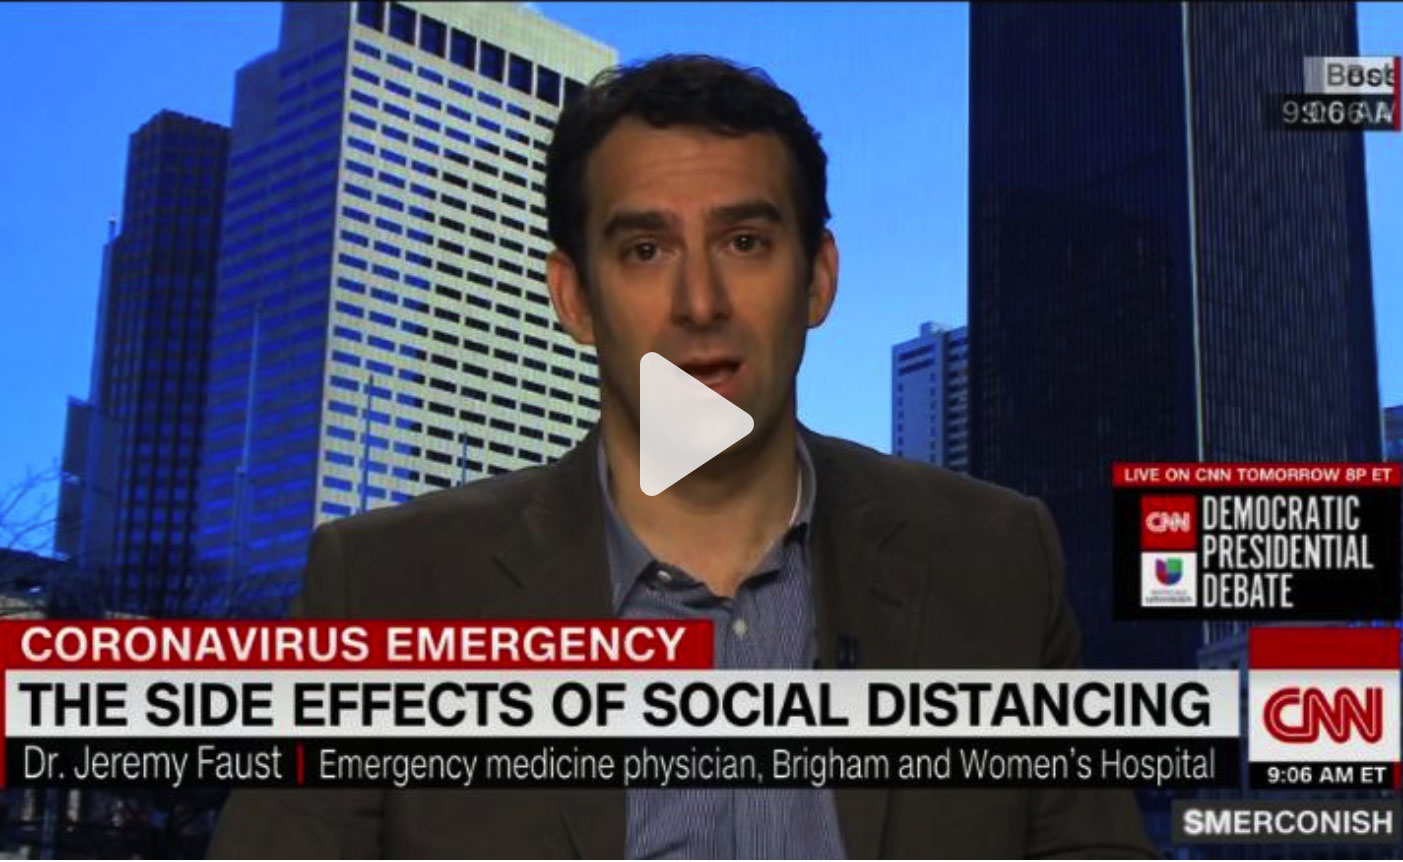 Image from CNN article – ER Doctor on lack of virus testing and social distancing concerns 05:08